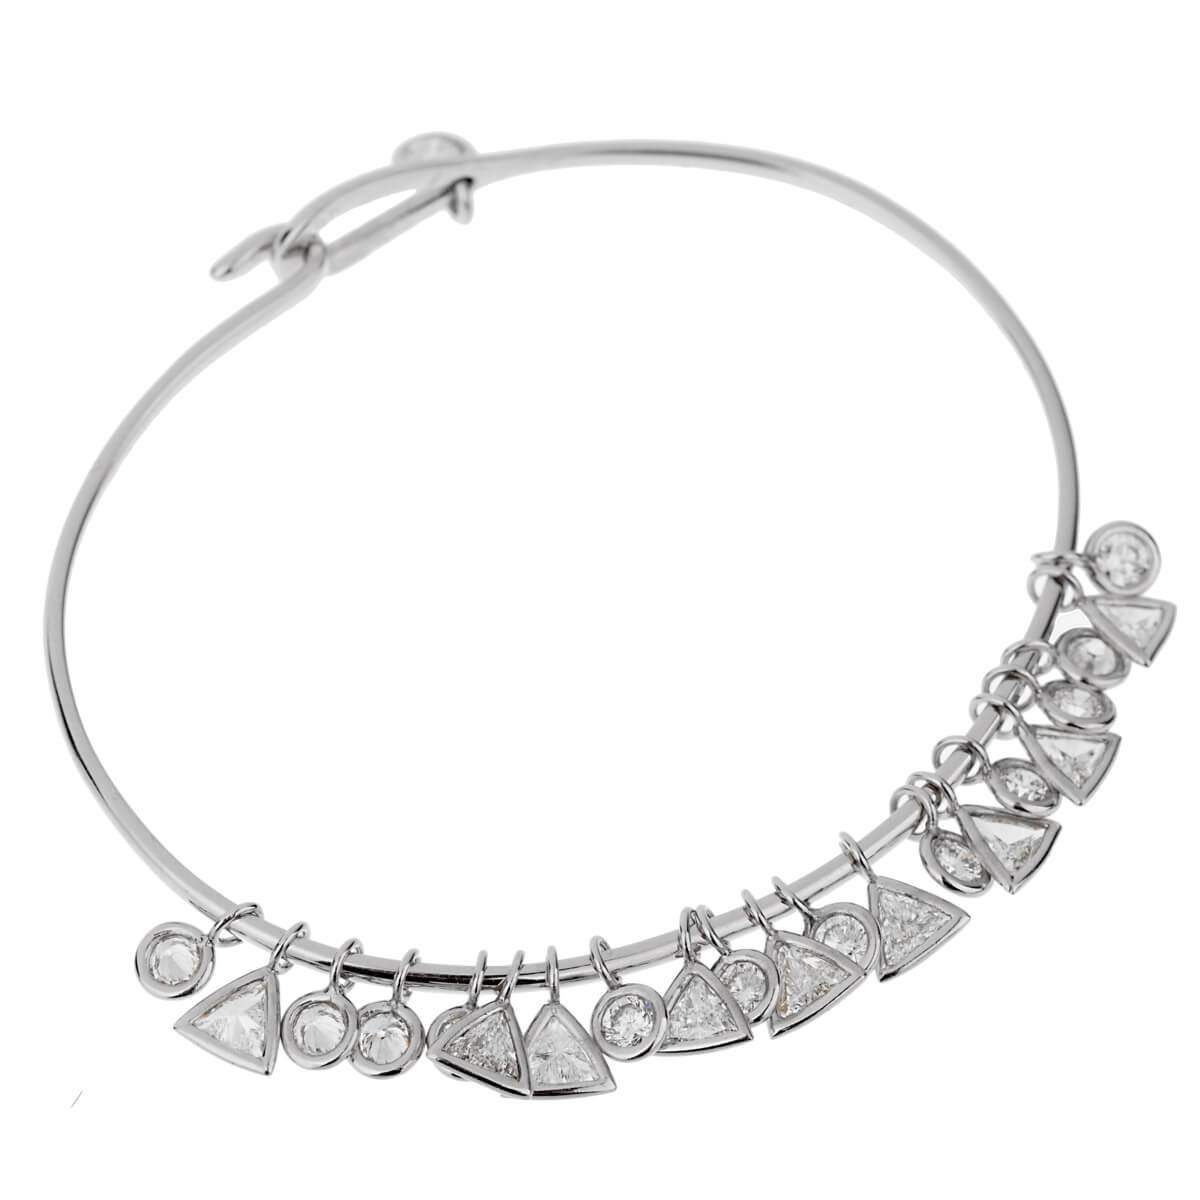 Christian Dior Dangling Diamond White Gold Bracelet